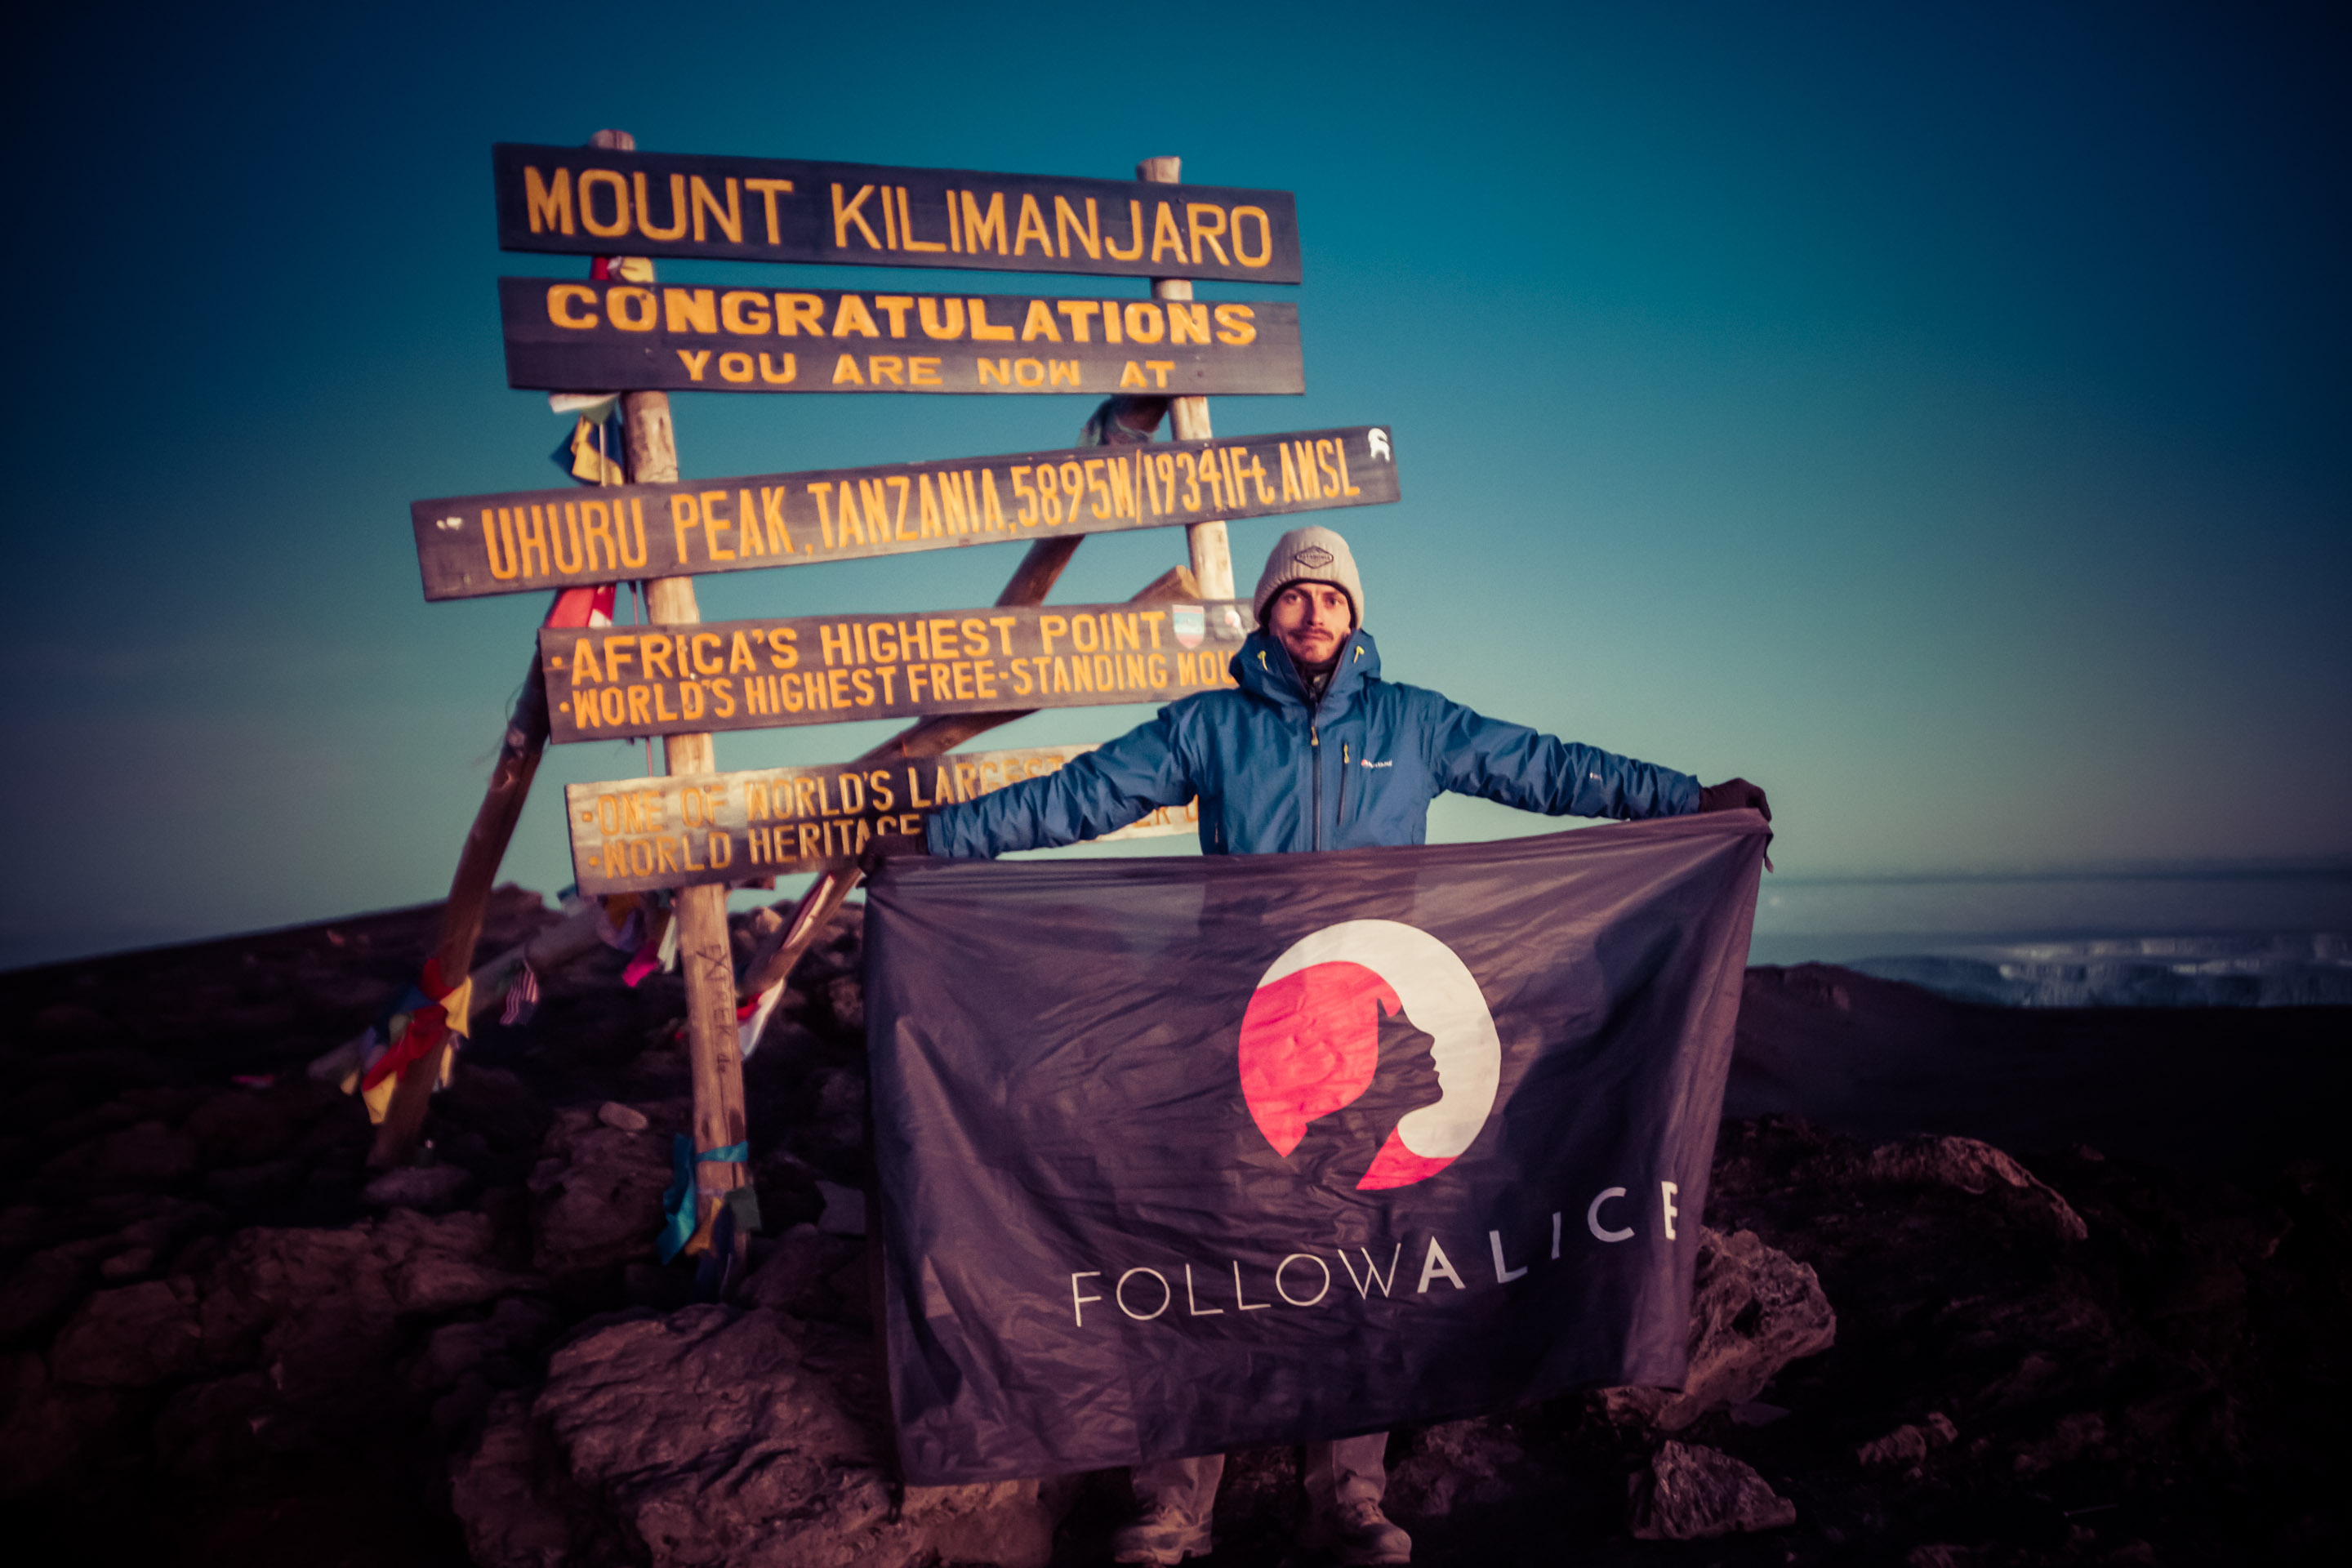 Ambassador Dan flying the Follow Alice flag at the summit of Mount Kilimanjaro